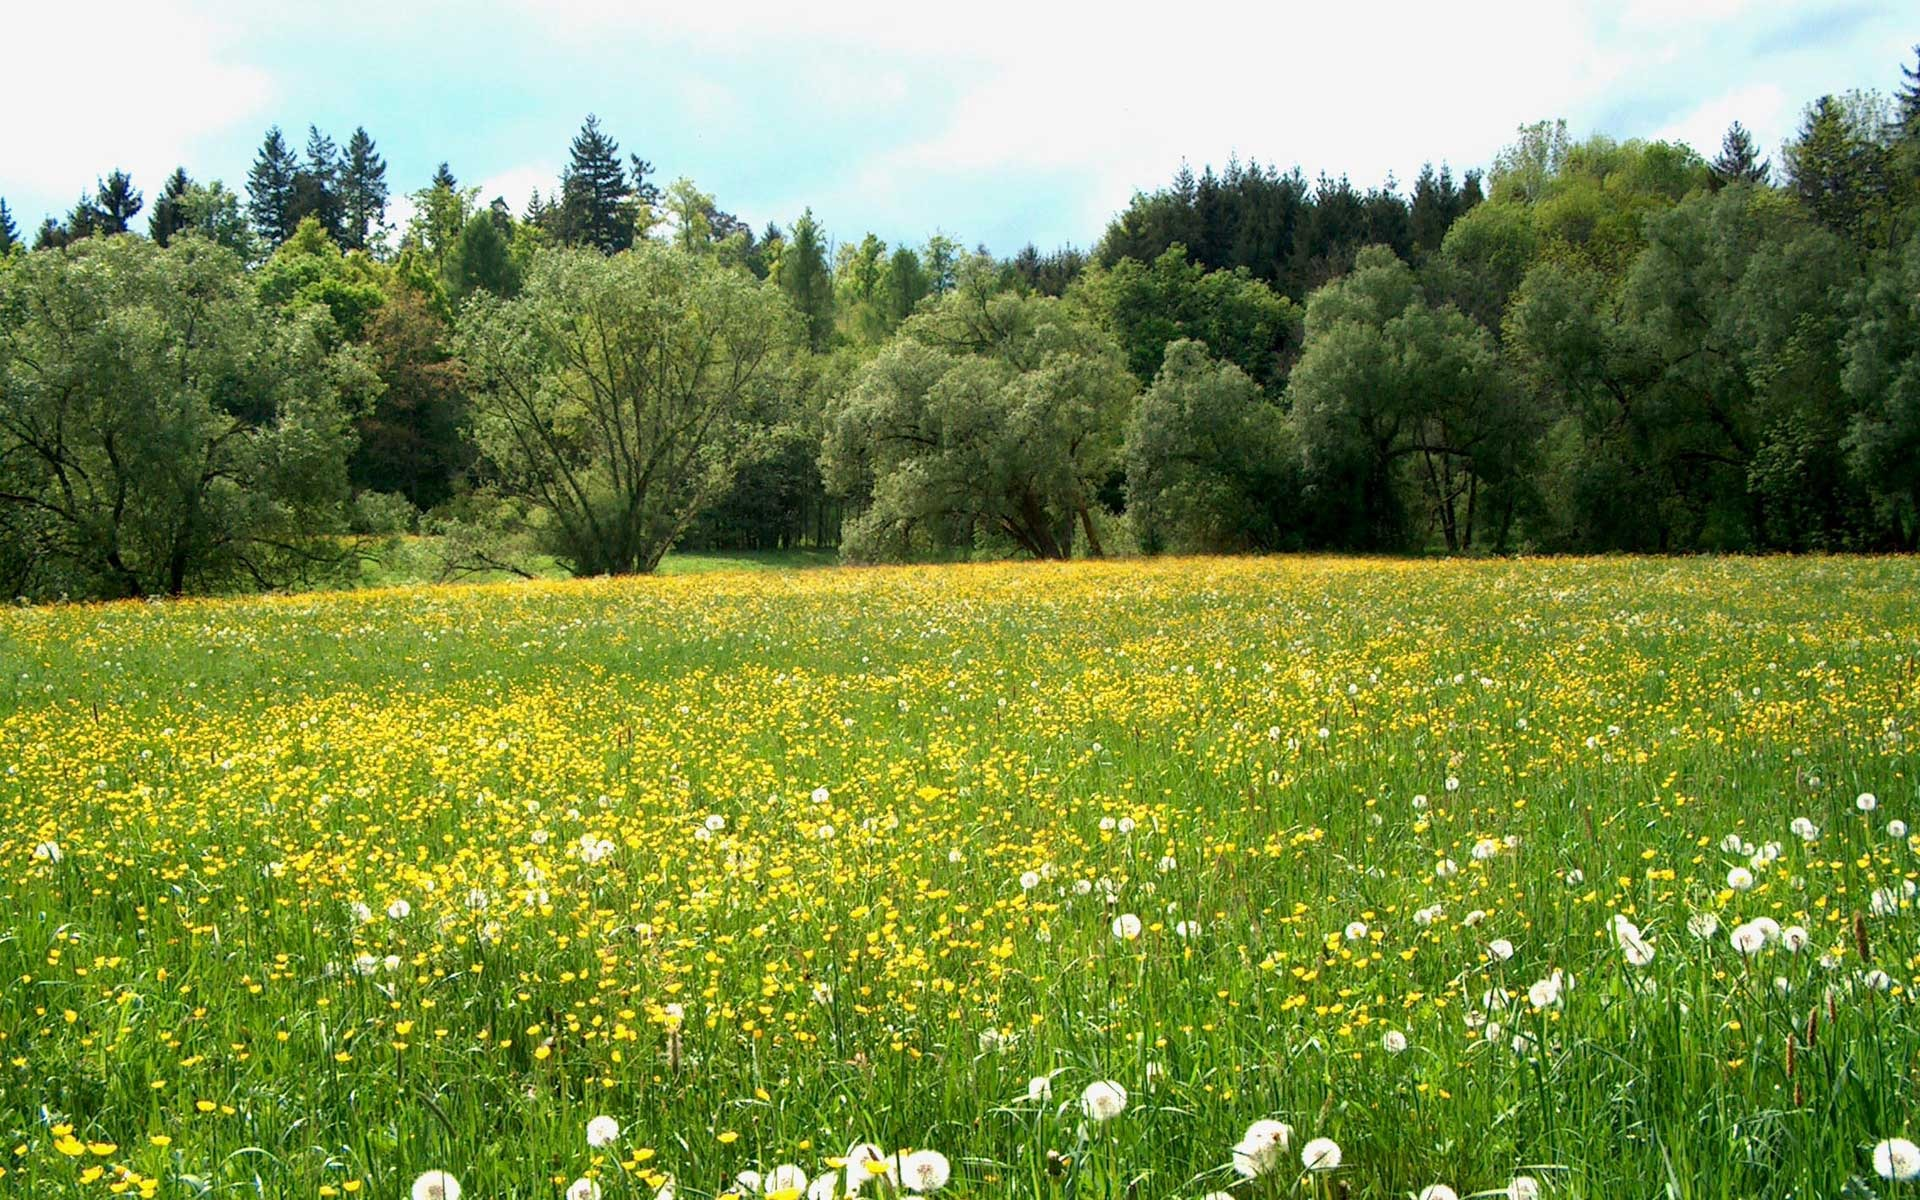 Meadow wallpaper 1920x1200 70613 for The meado